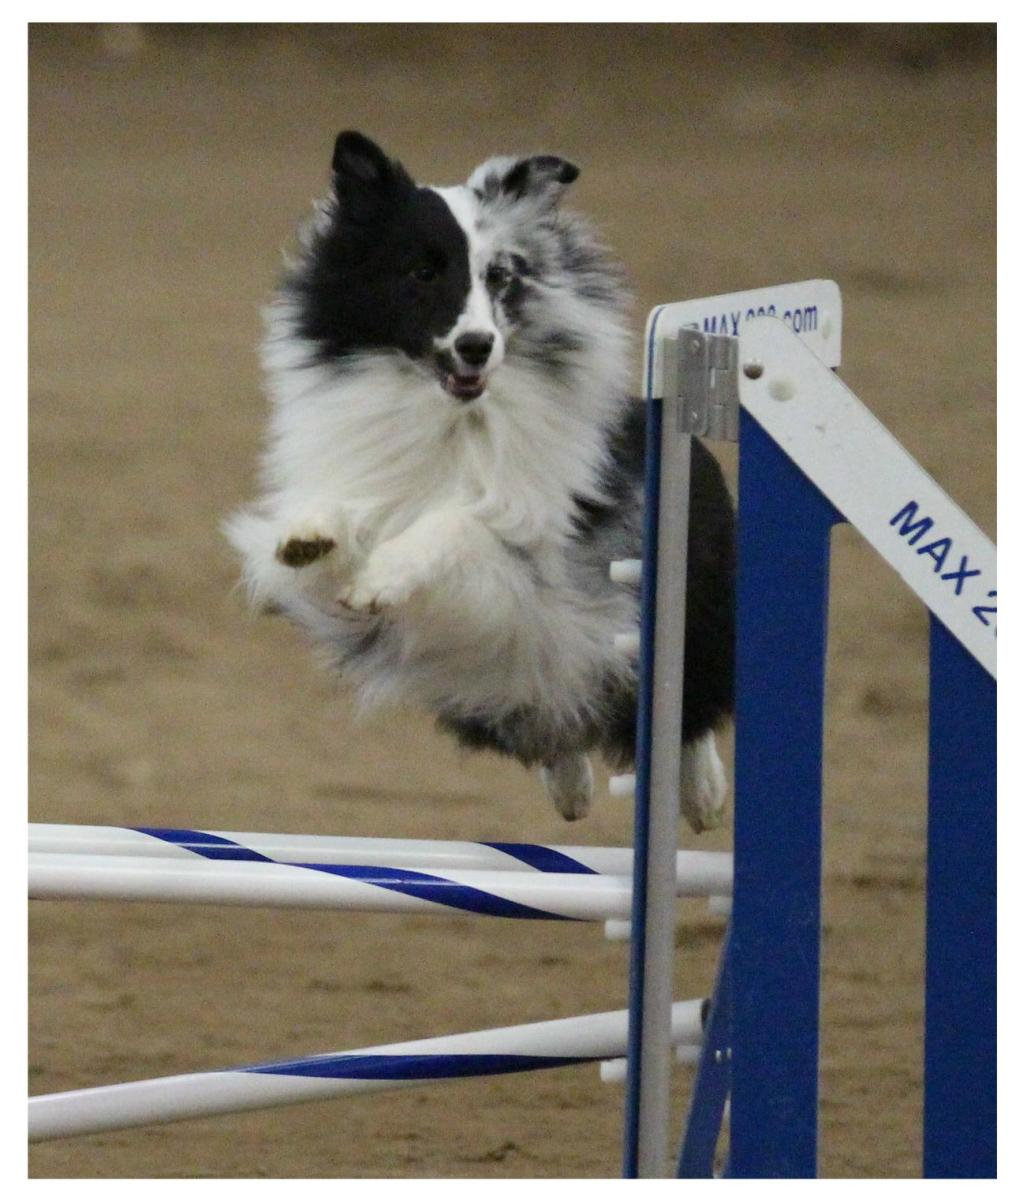 The author's sheltie taking a double jump.